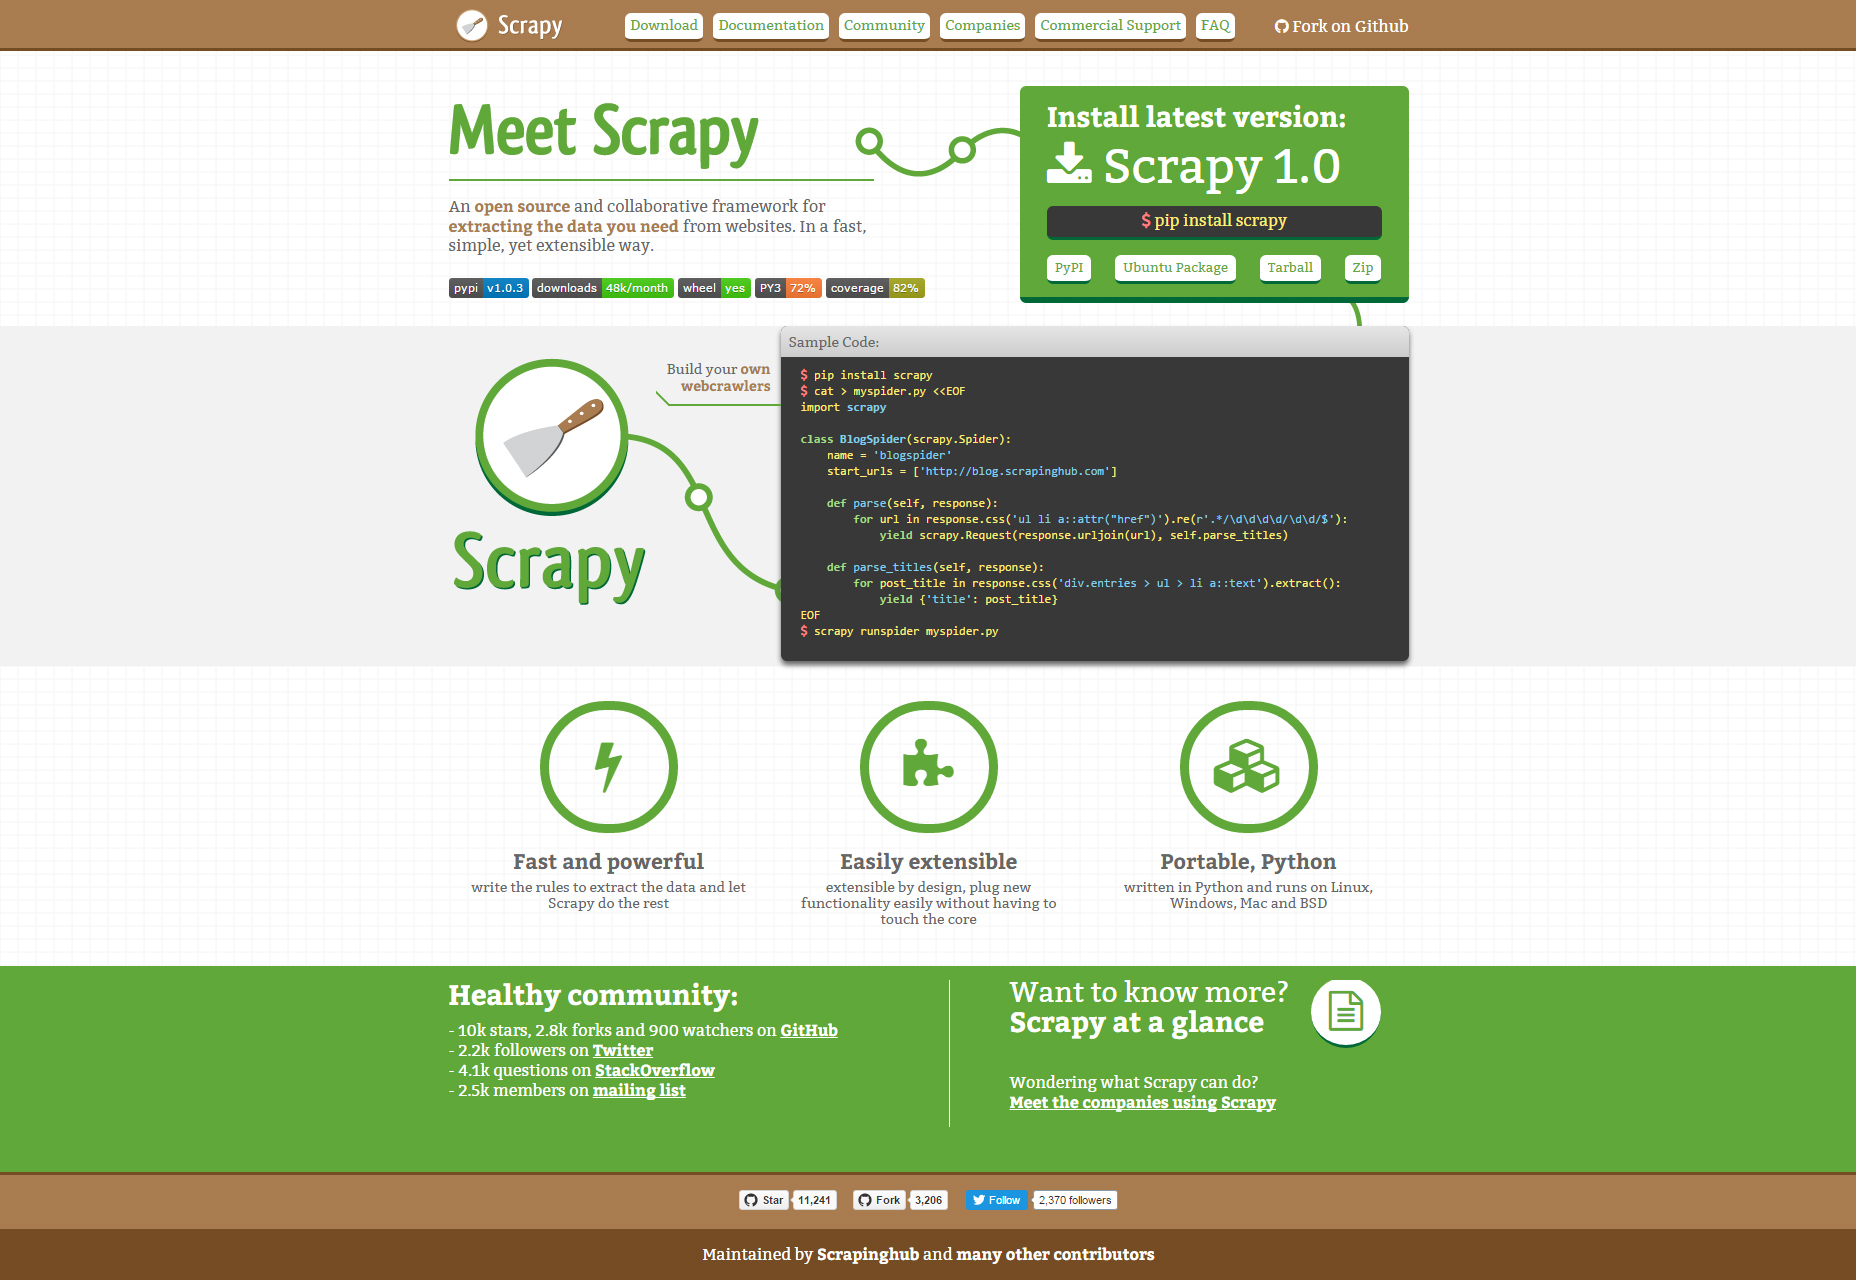 Scrapy: Powerful Scraping and Web Crawling Framework